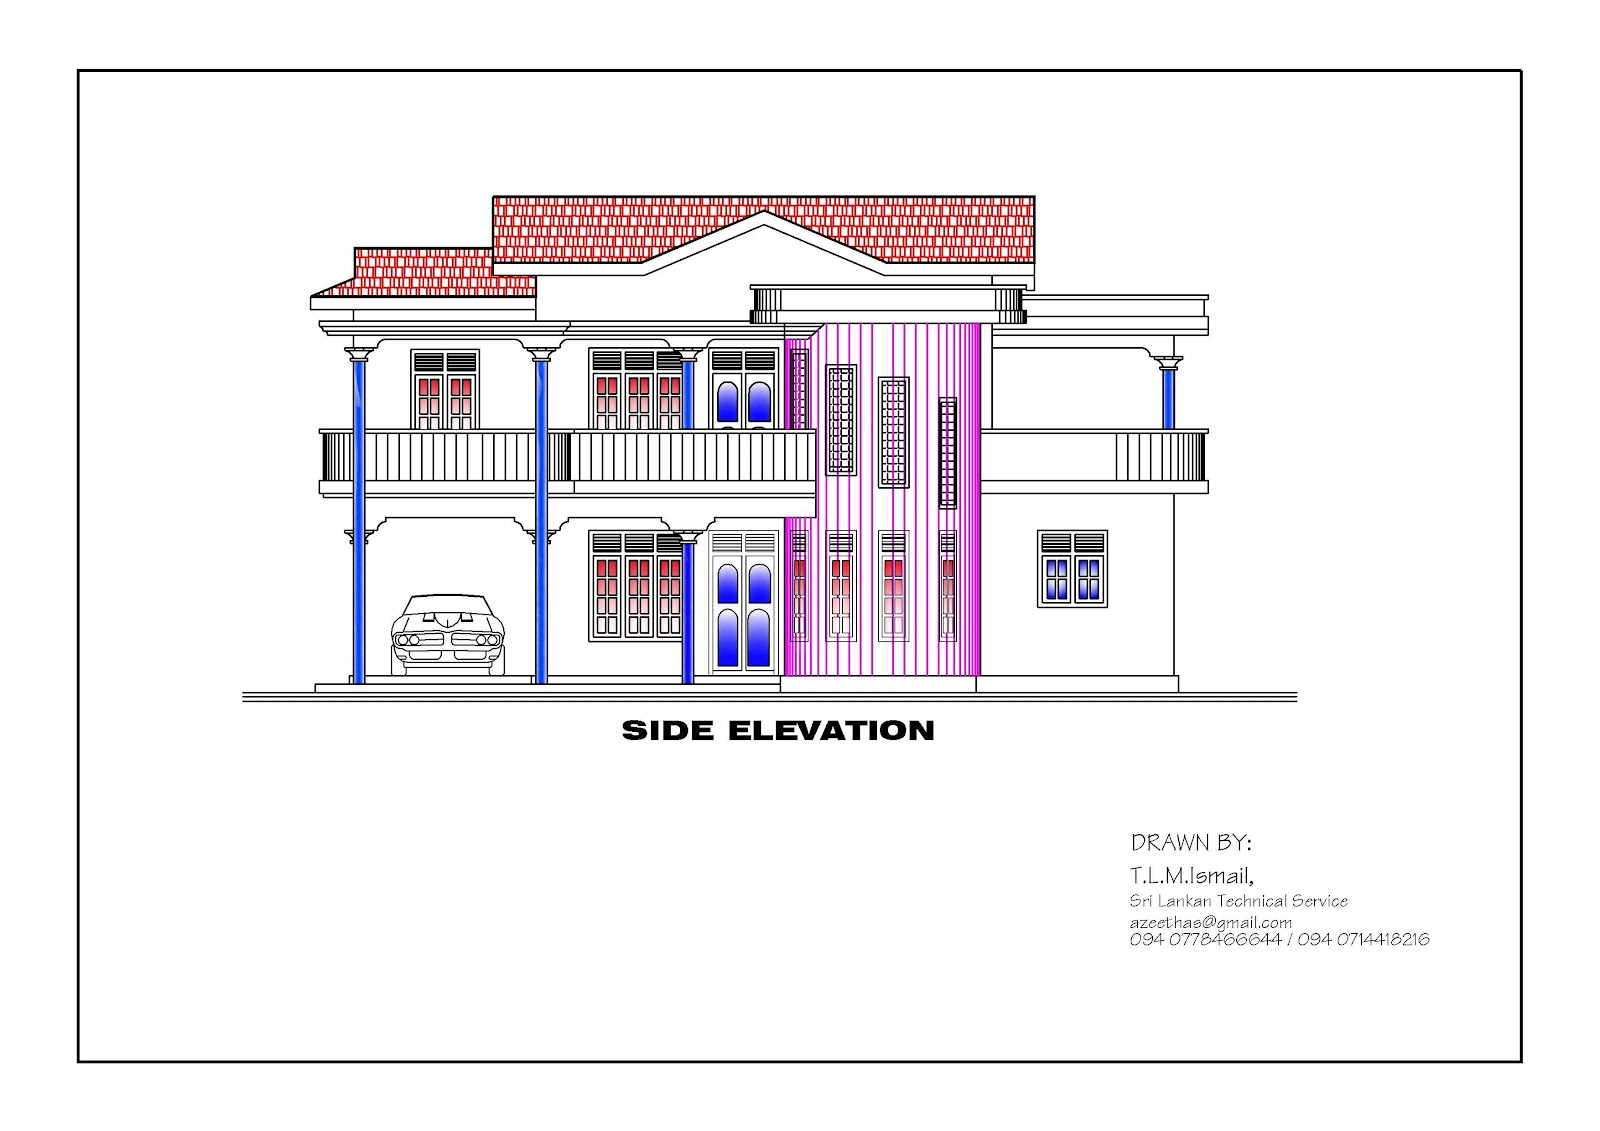 Free building drawing at getdrawings free for personal use 1600x1131 free home design plans malvernweather